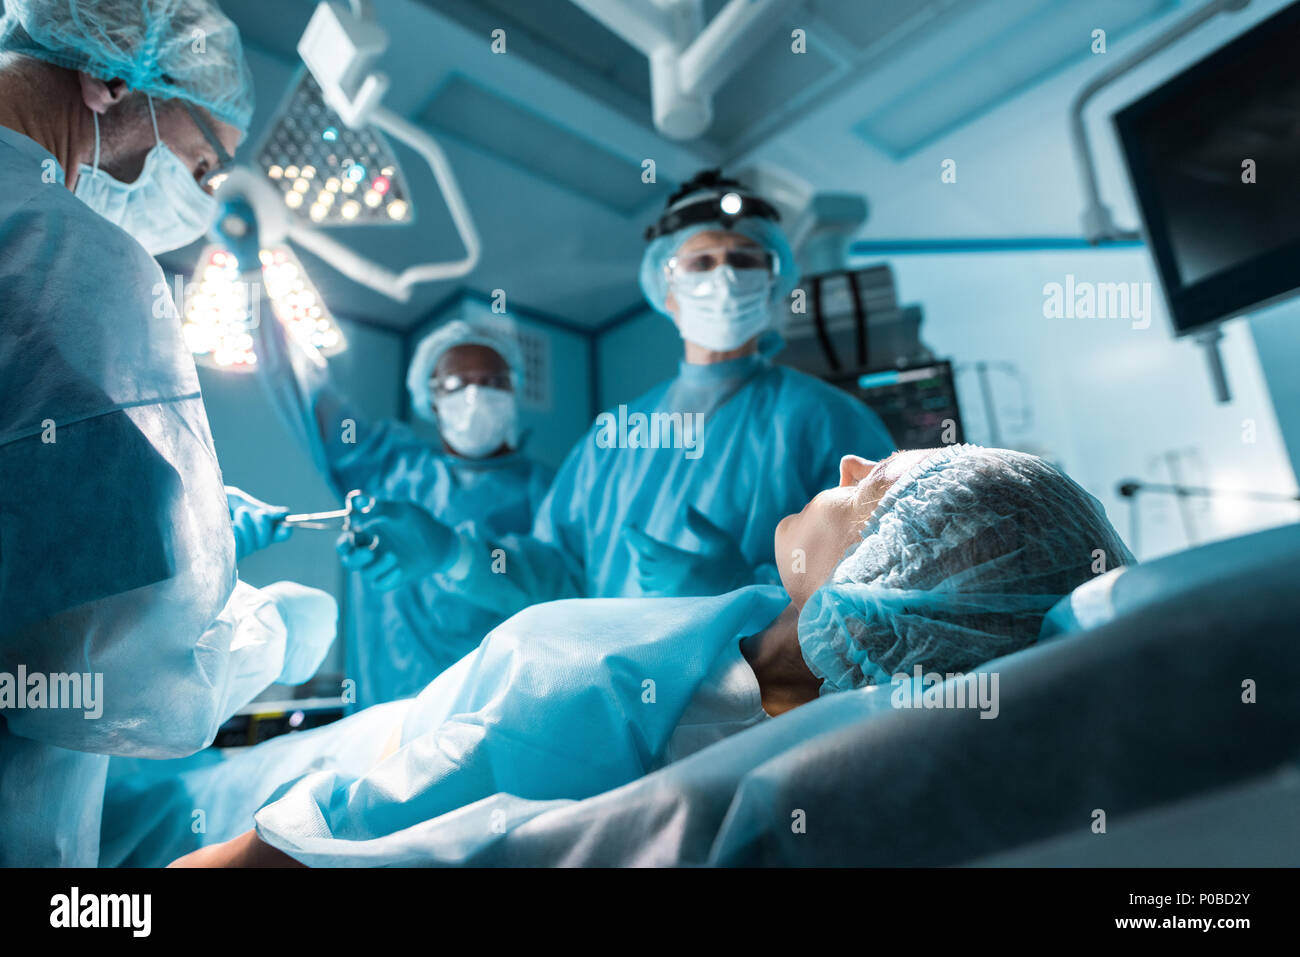 patient lying on operating table in surgery room - Stock Image